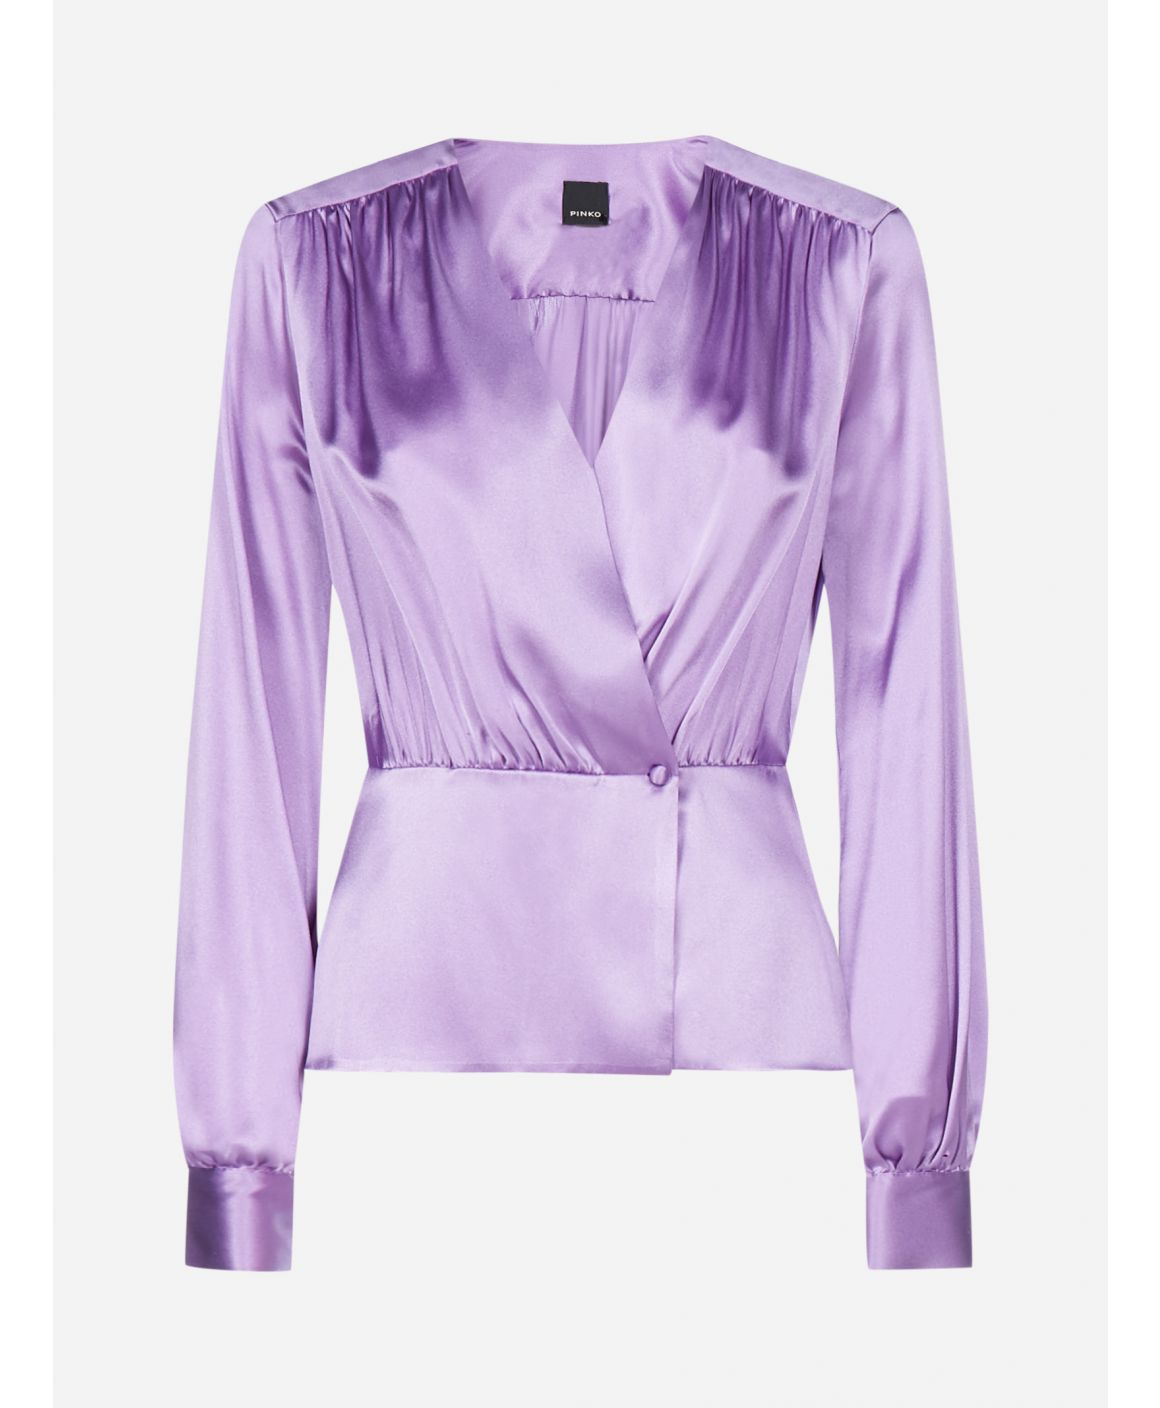 Limitato silk satin blouse